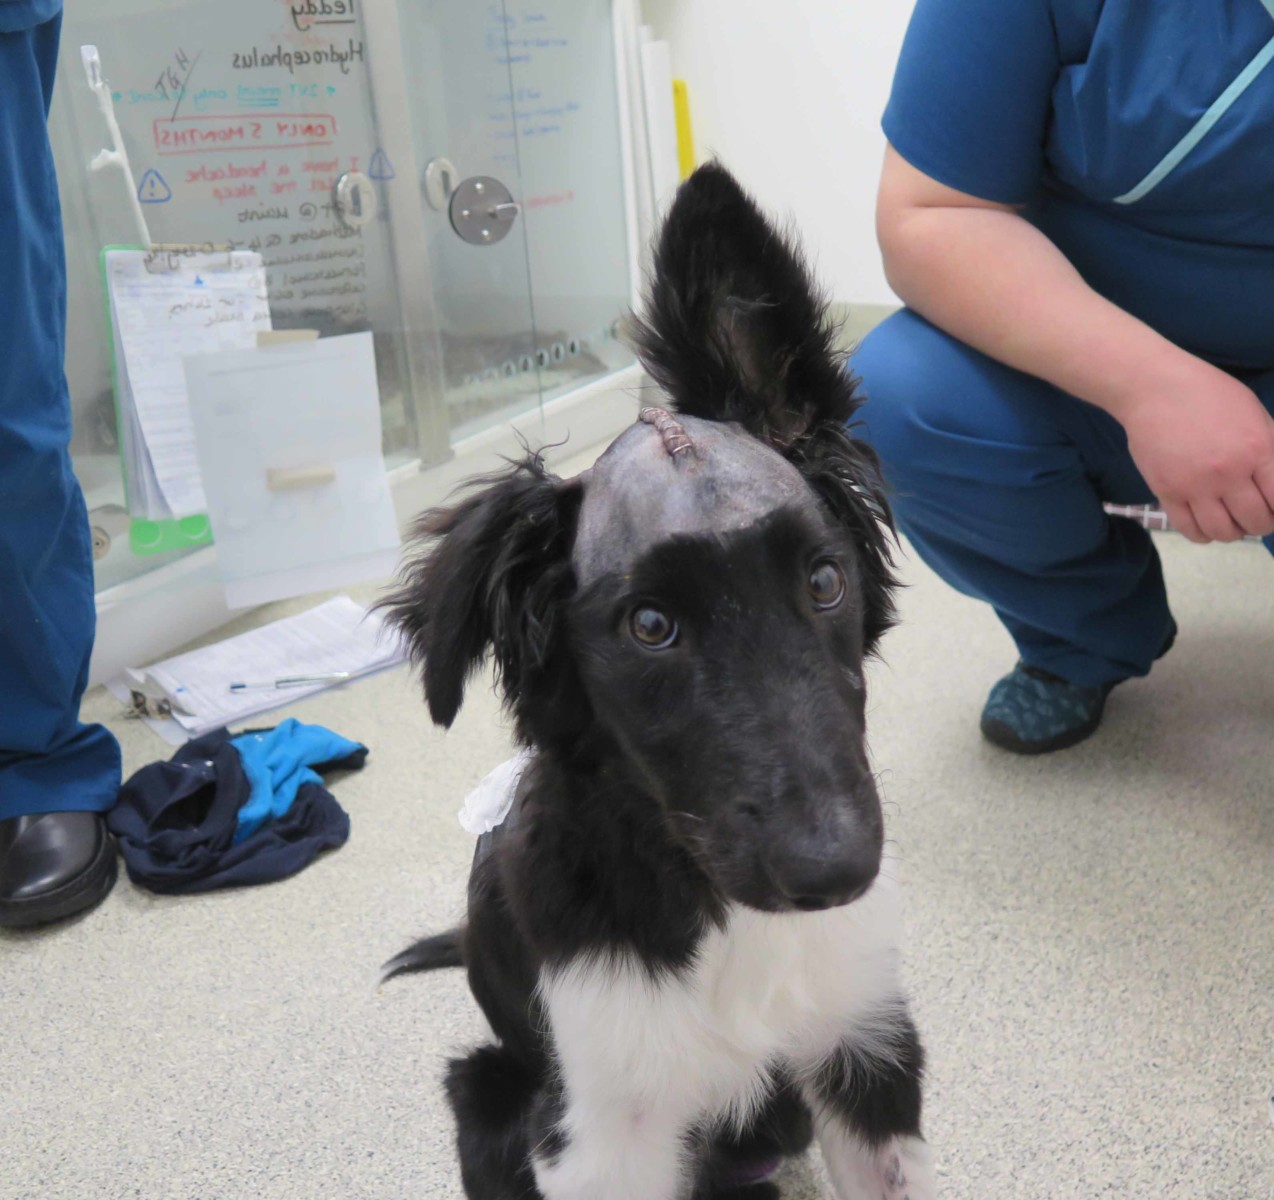 5-month-old Border Collie puppy after brain surgery for hydrocephalus at Fitzpatrick Referrals